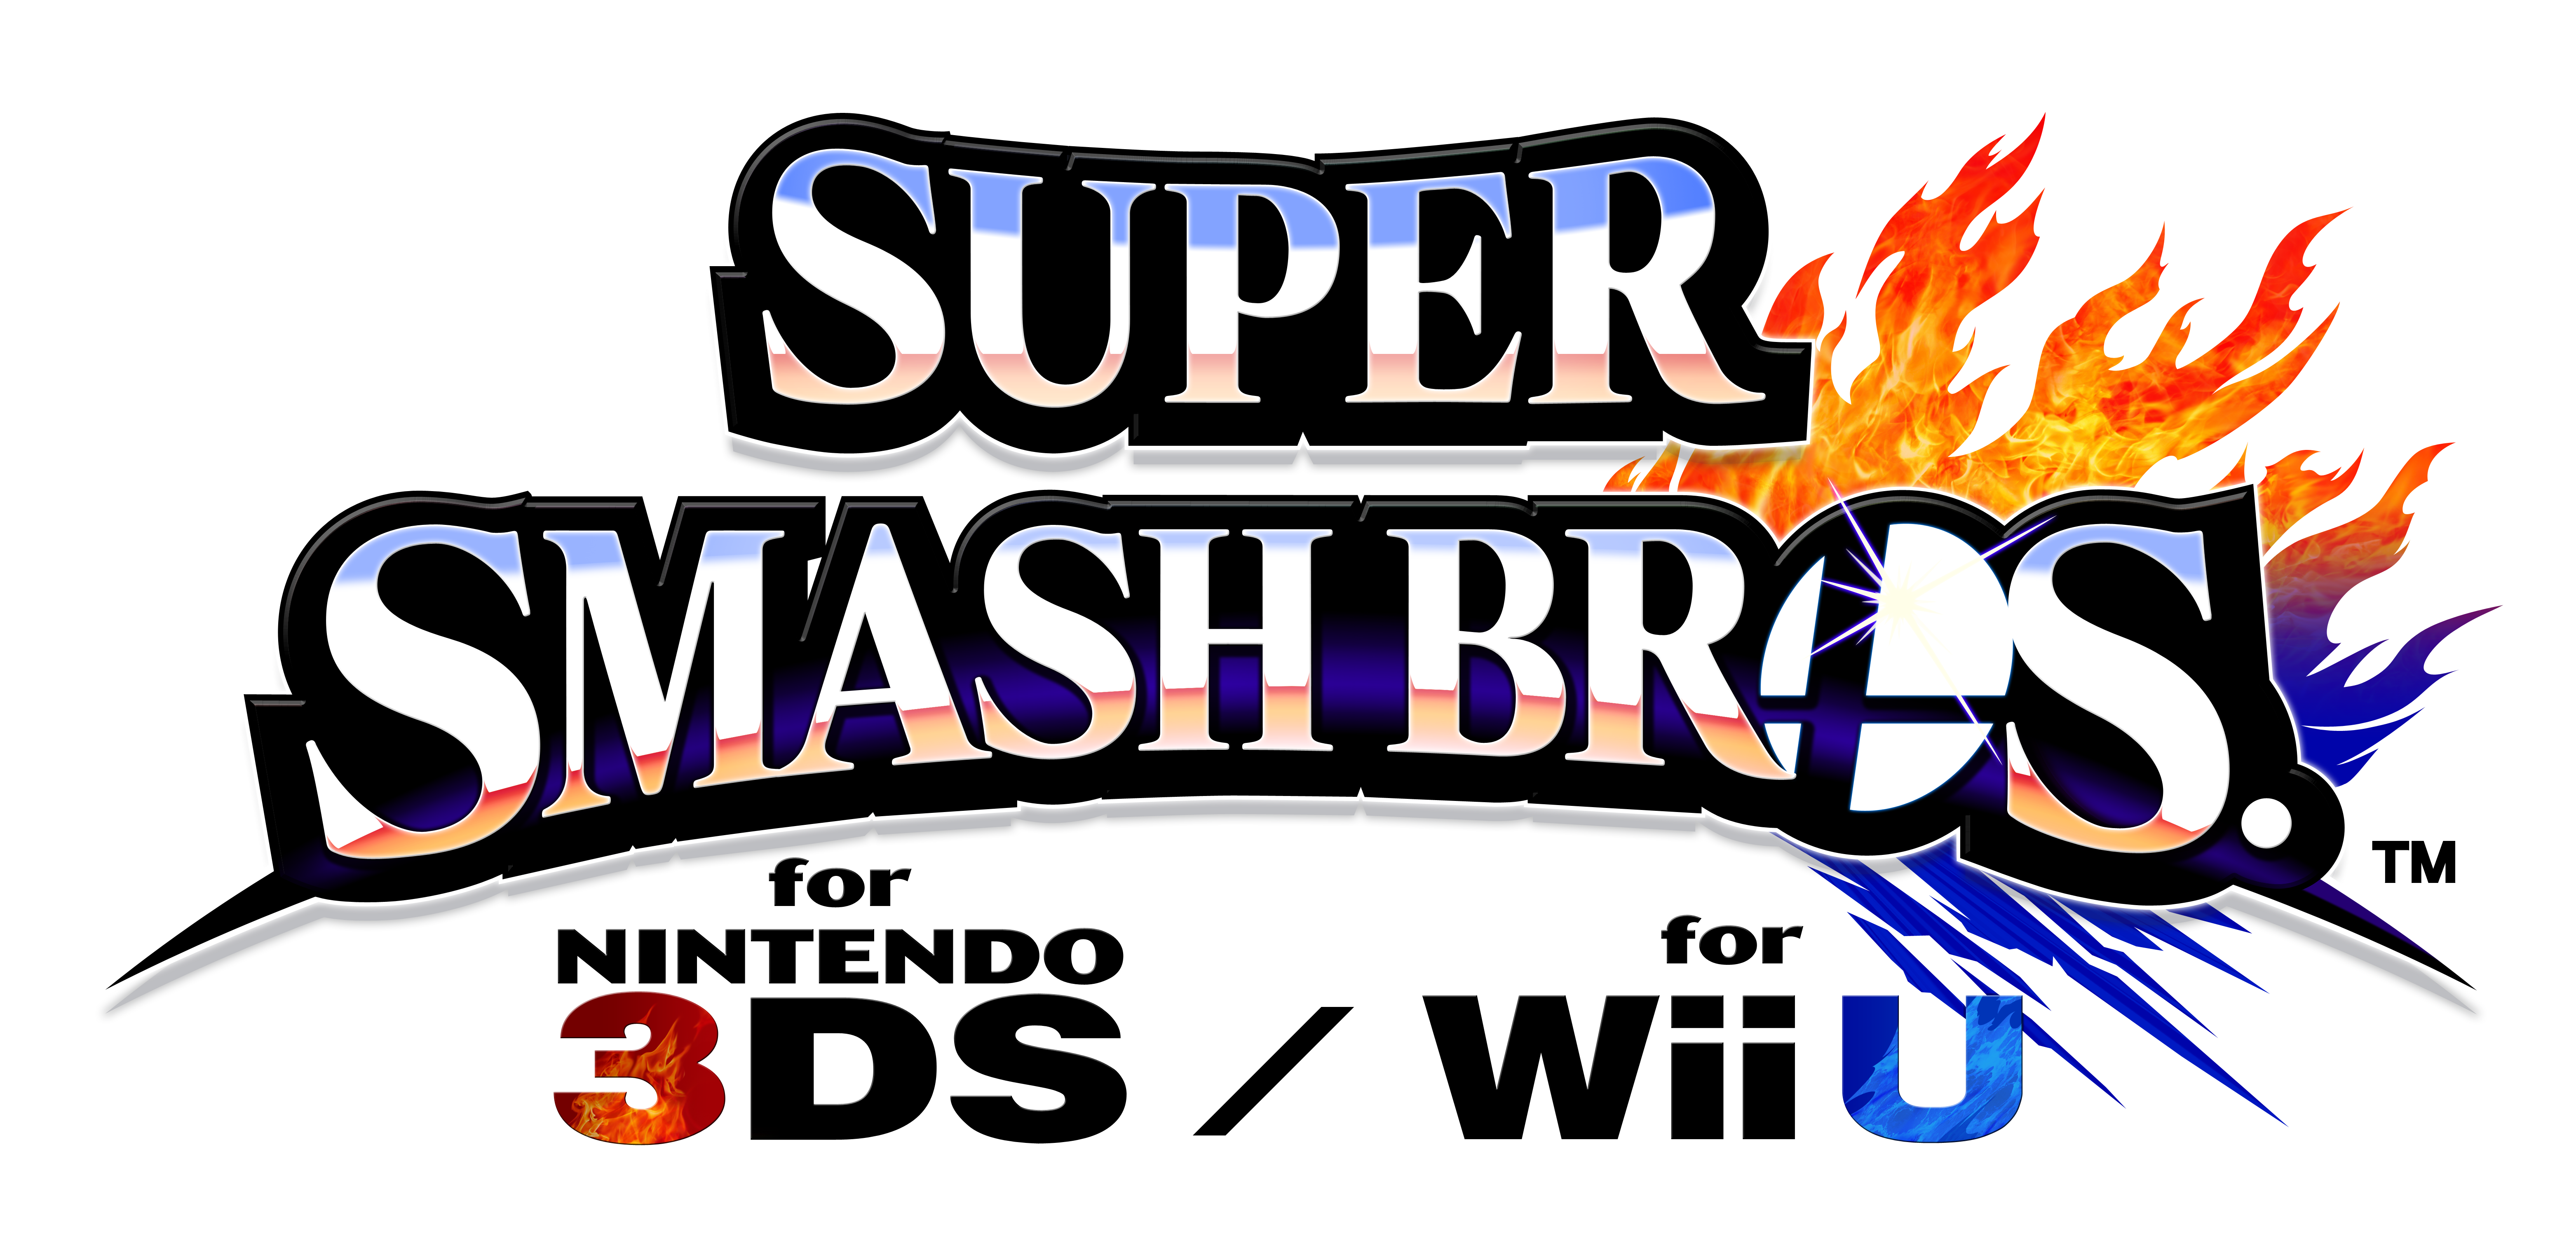 http://images2.wikia.nocookie.net/__cb20130615154743/ssb/images/1/12/Super_Smash_Bros._for_3DS_%26_Wii_U.png